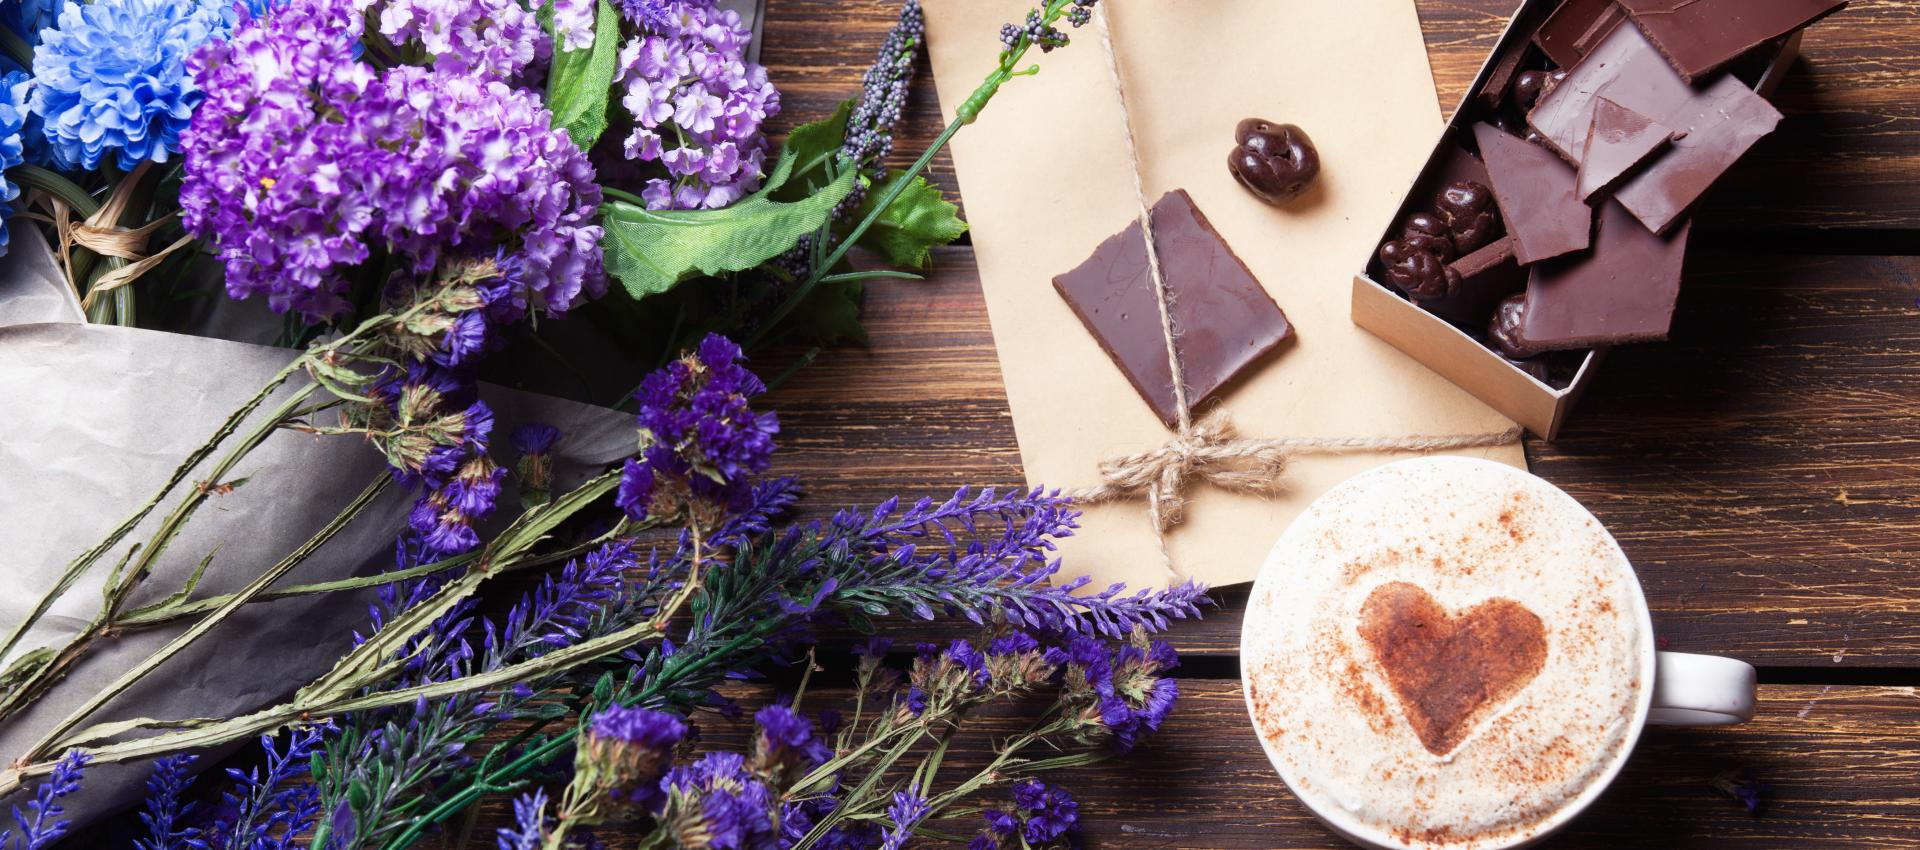 lavender, chocolate, and a latte